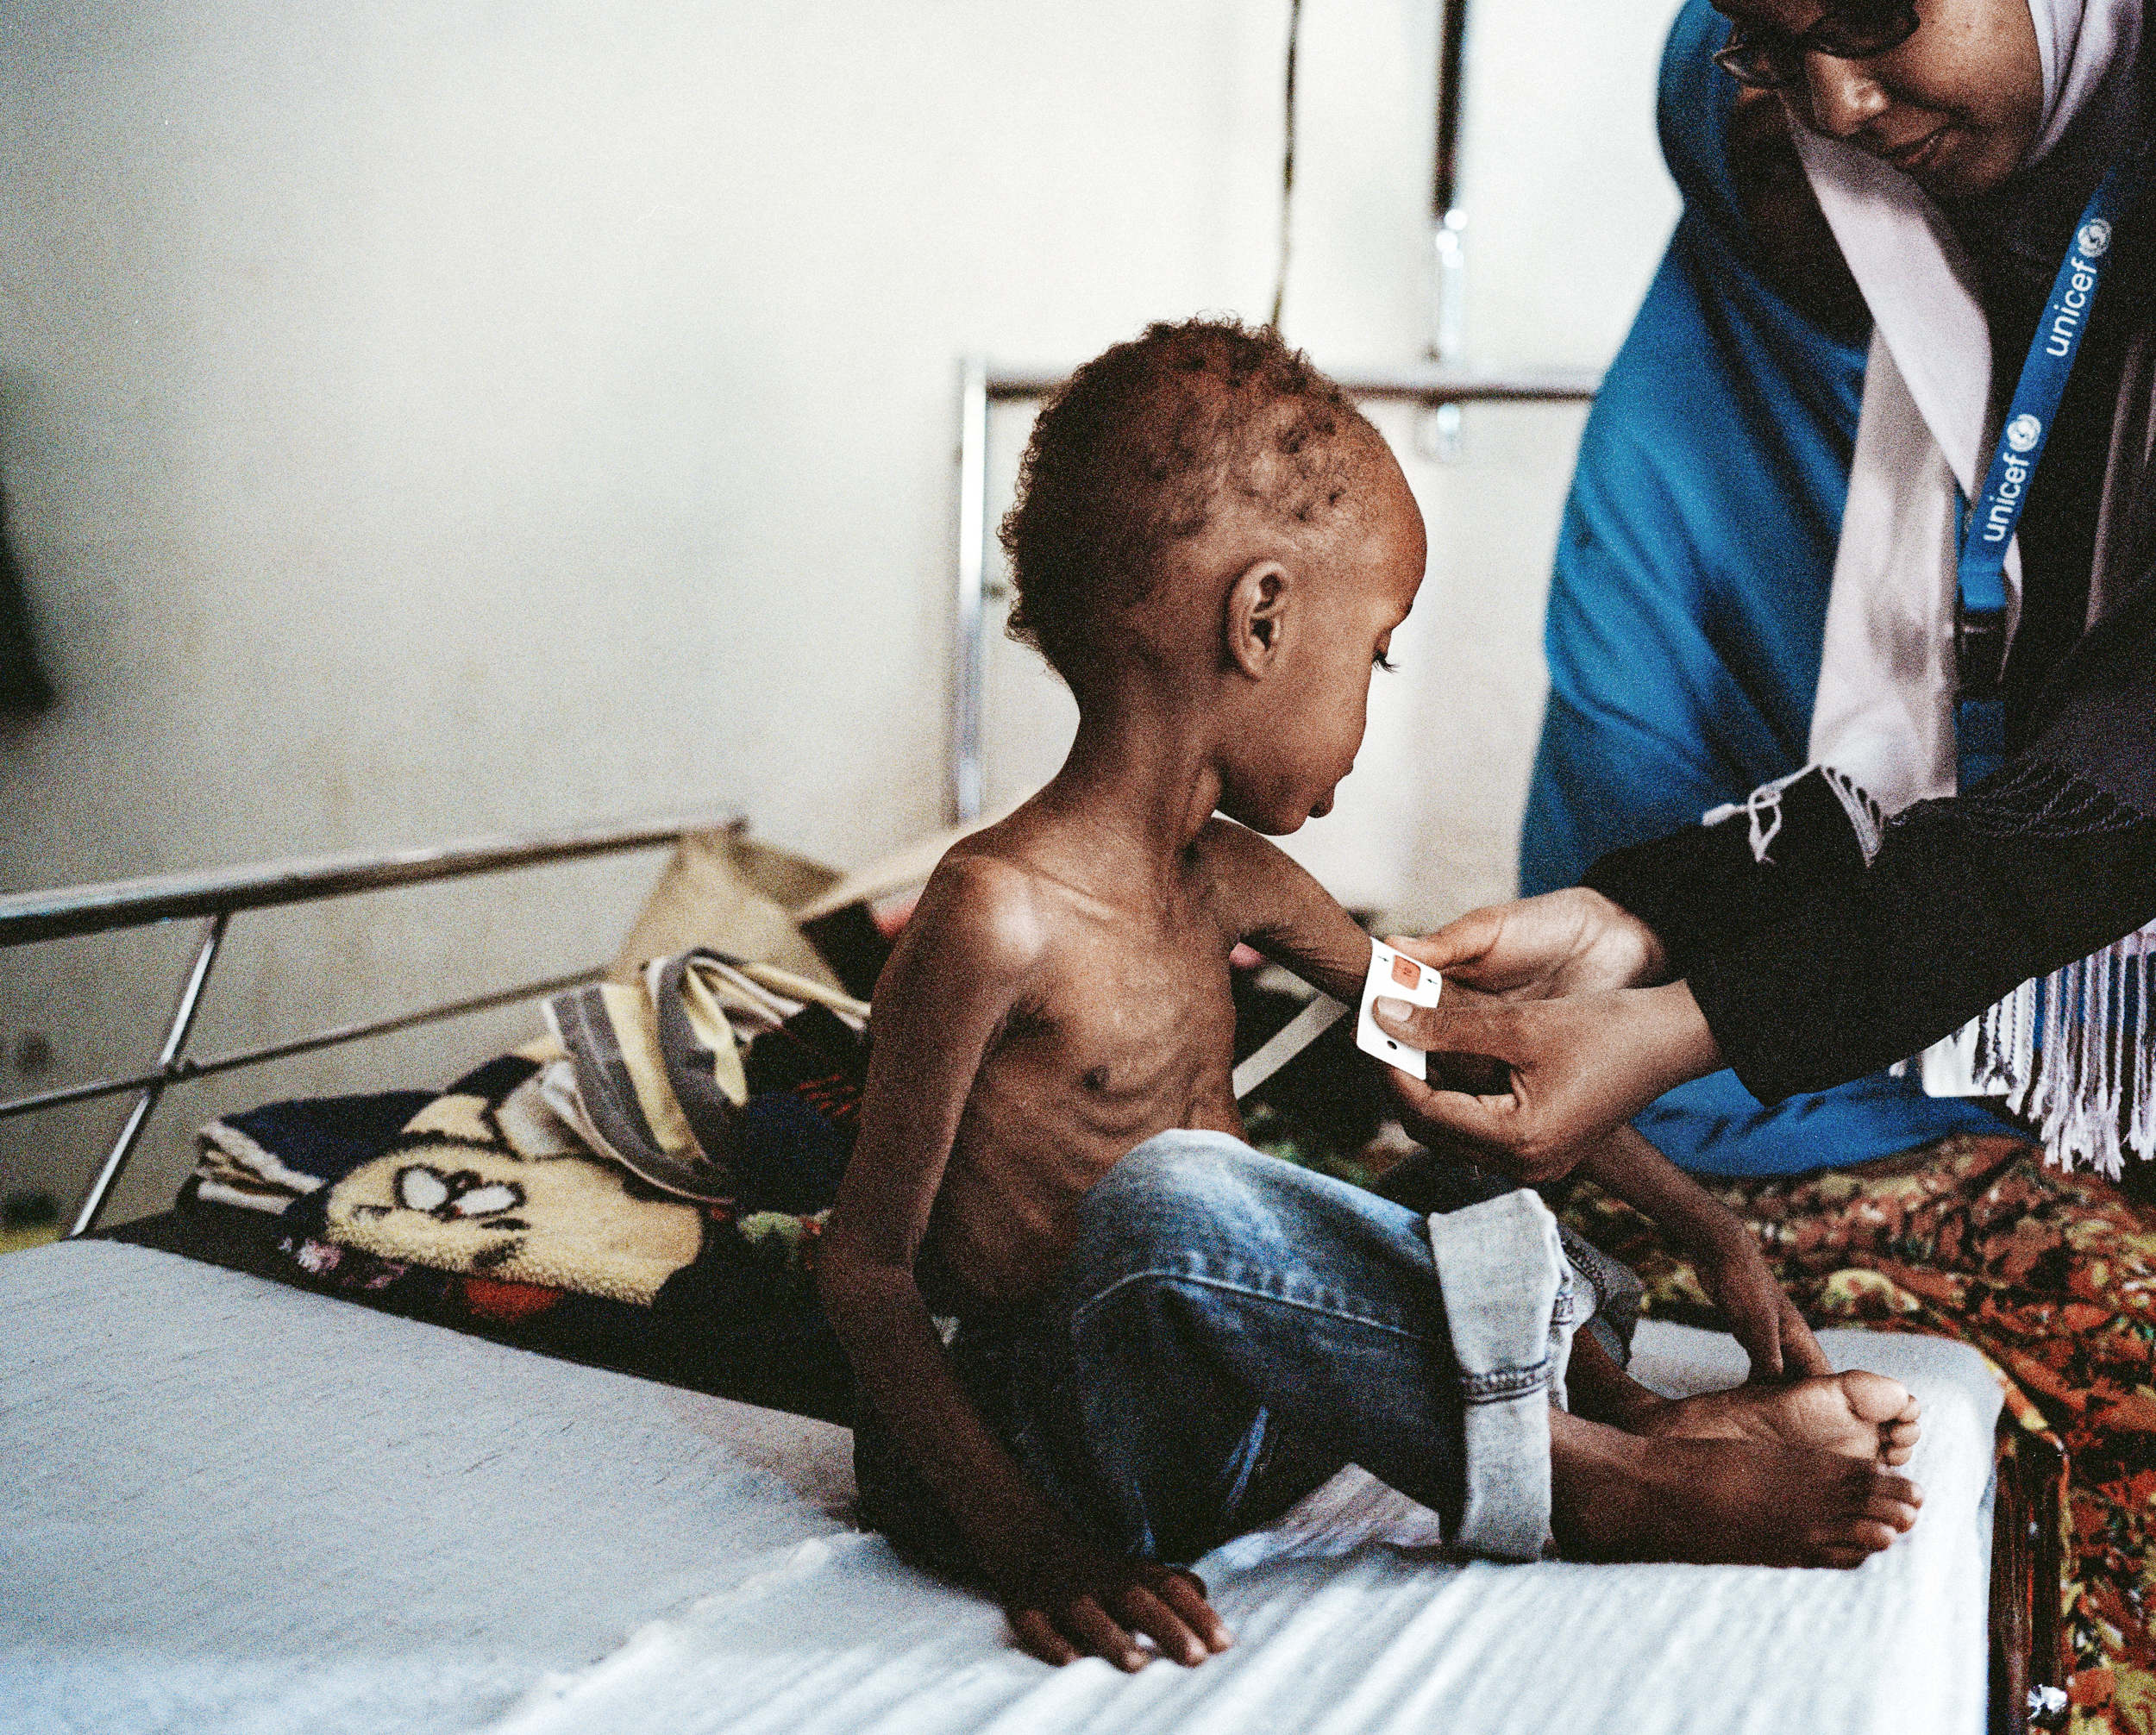 UNICEF malnutrition and dehydration treatment center. Somalia, 2013.